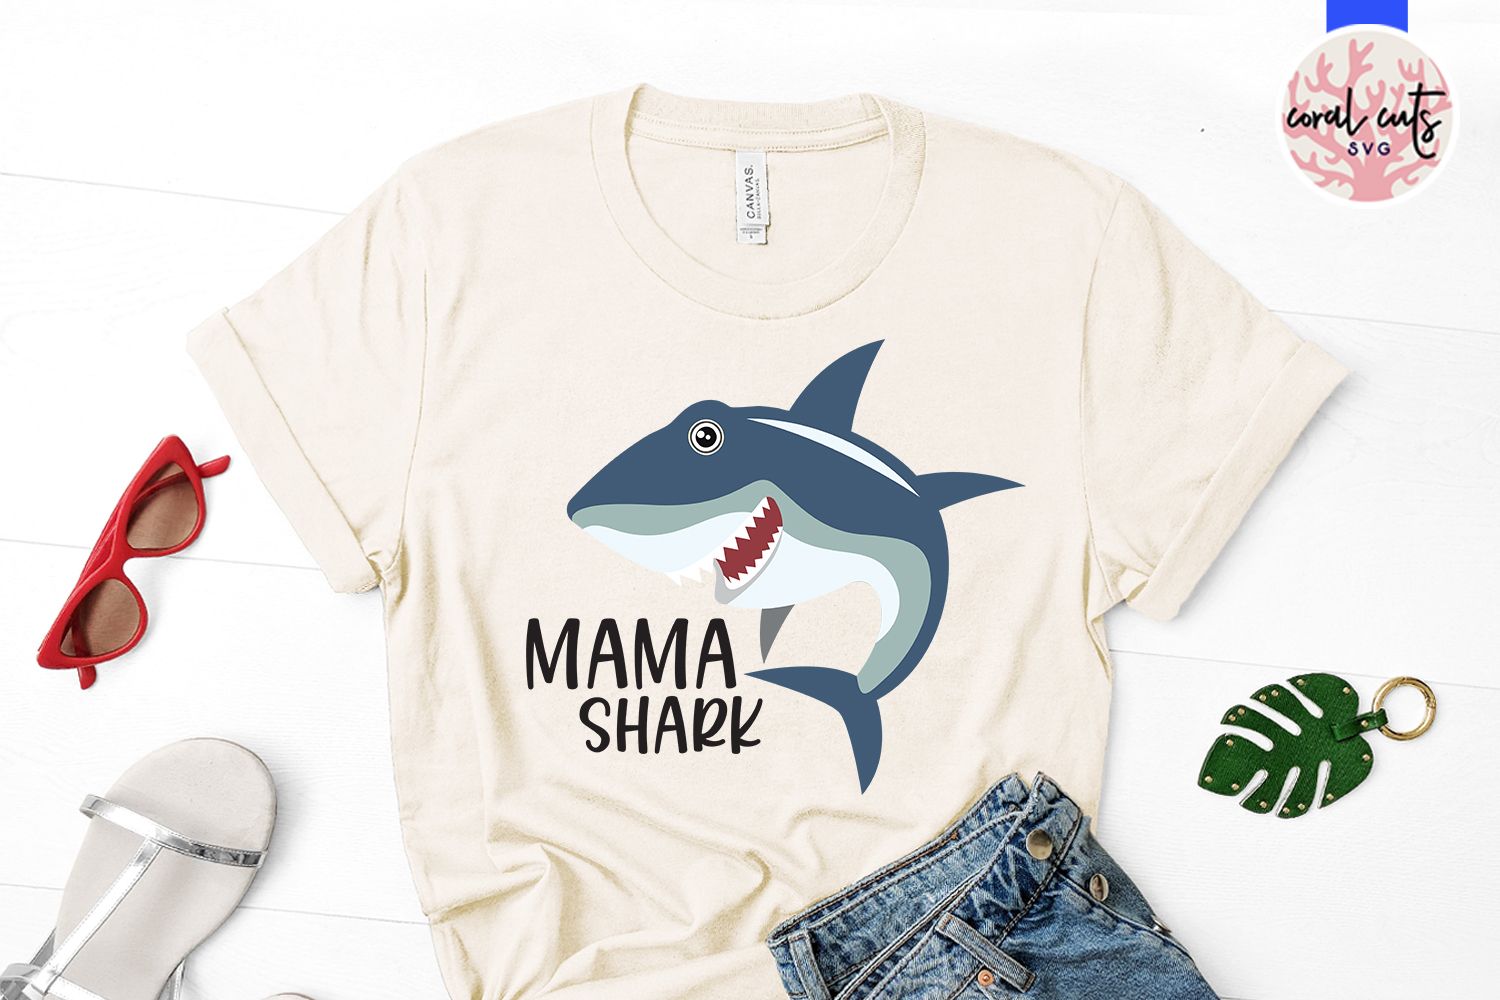 Mama shark - Mother SVG EPS DXF PNG Cutting File example image 2